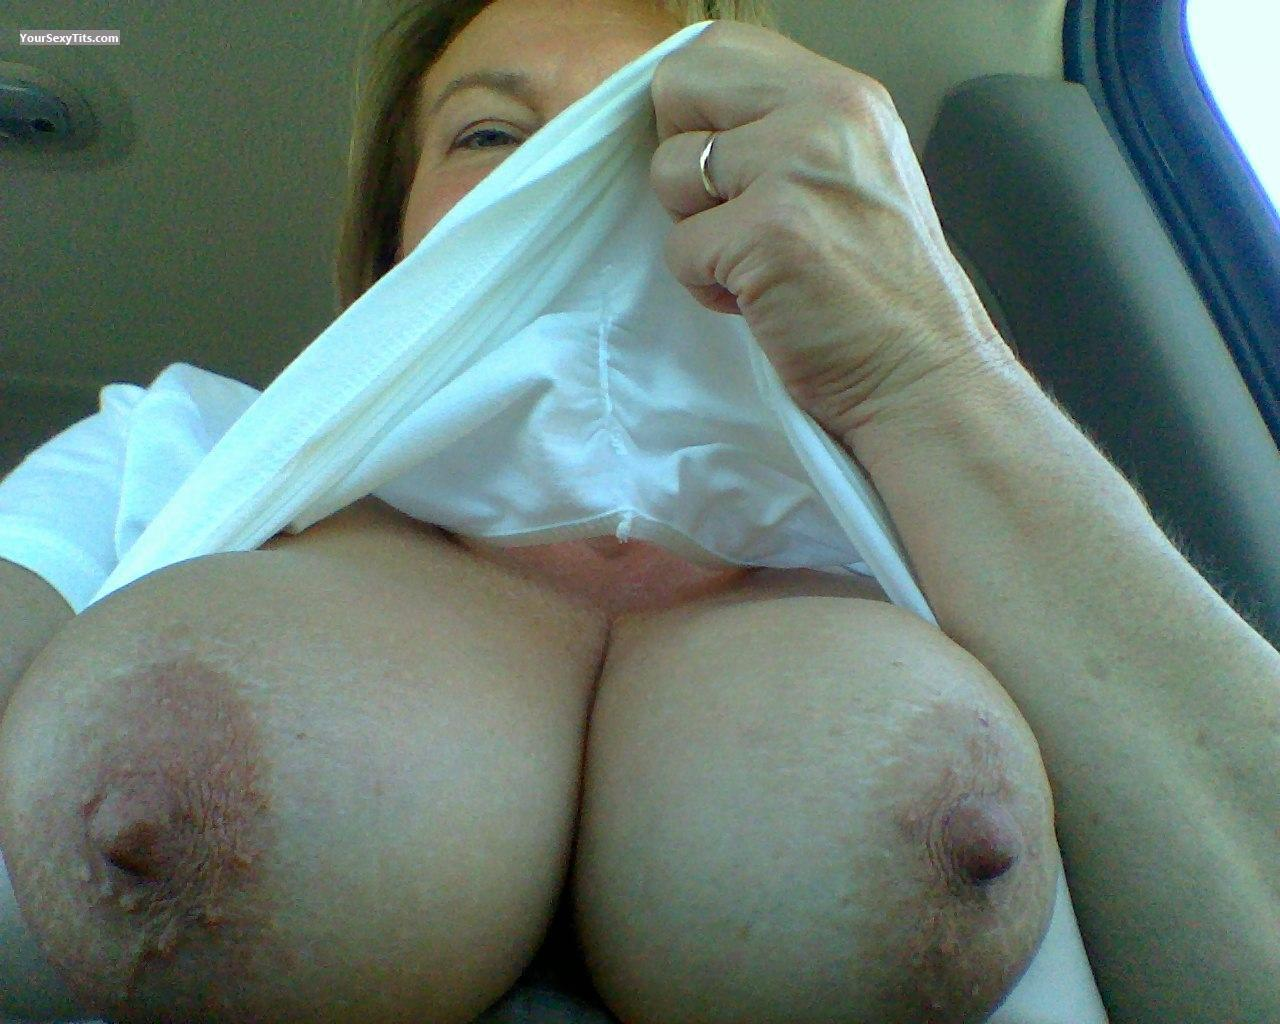 Tit Flash: My Big Tits (Selfie) - Squirt from United States